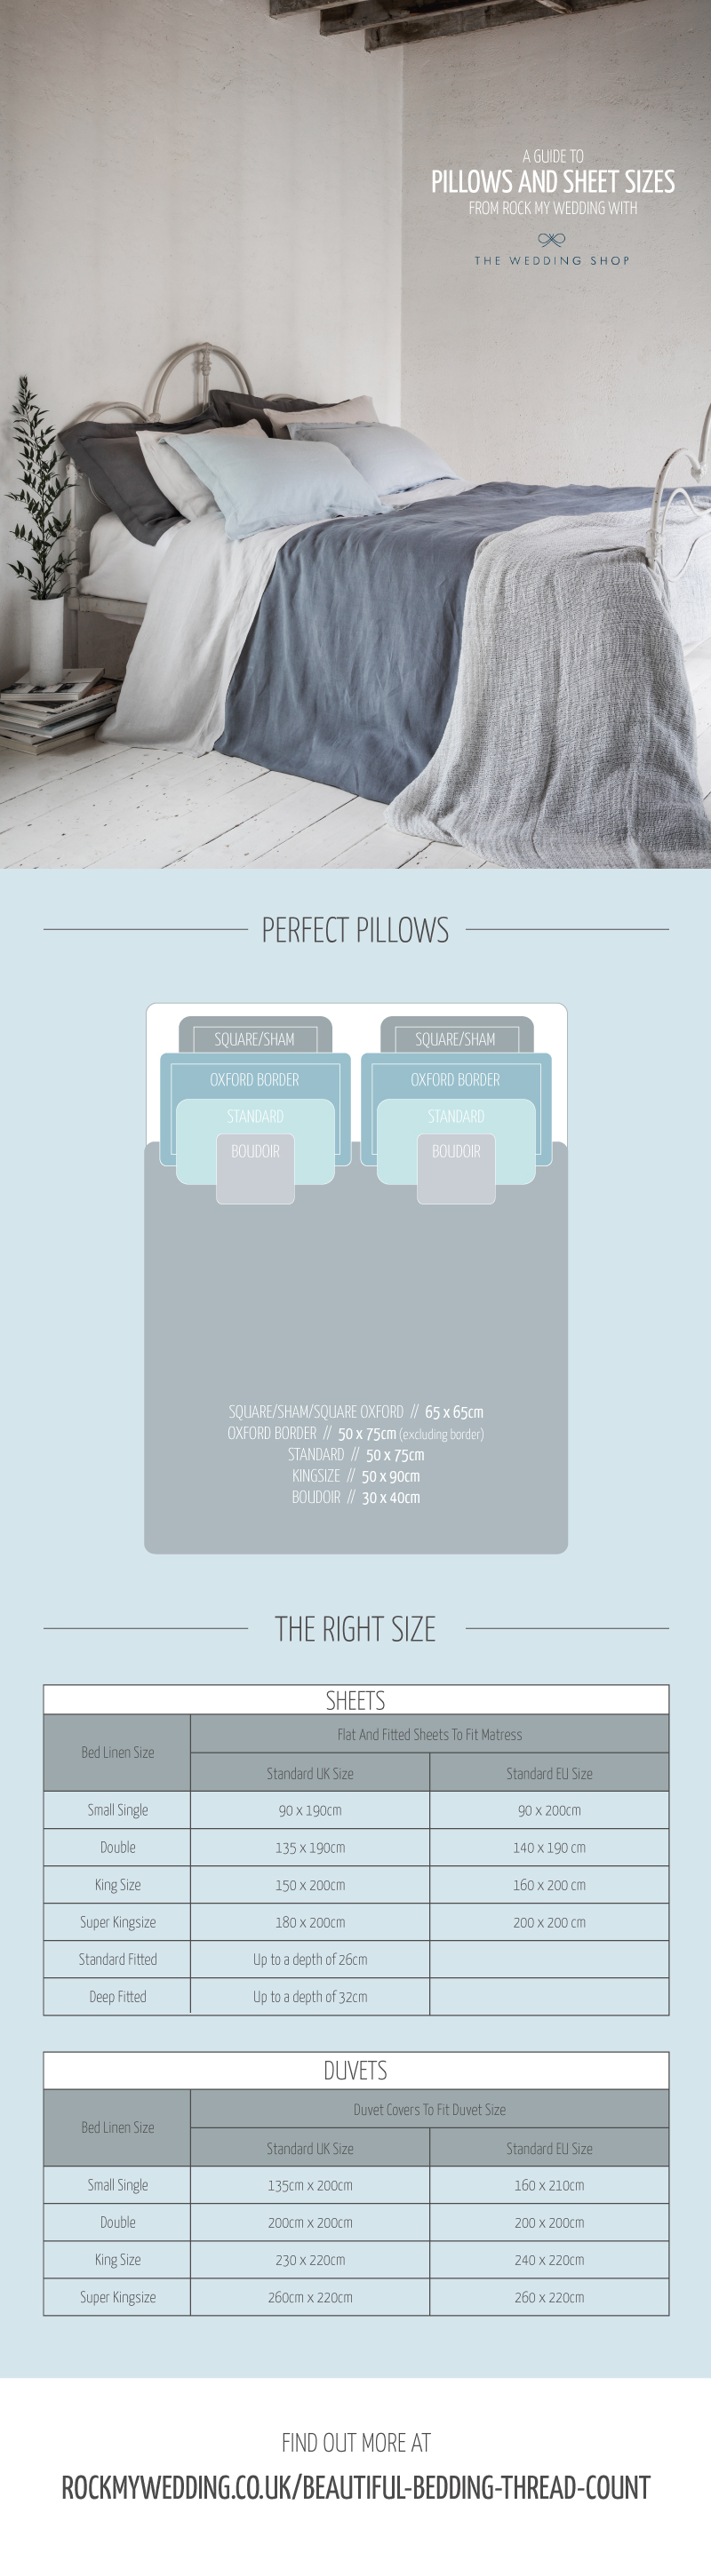 Your Guide To Pillow & Sheet Sizes